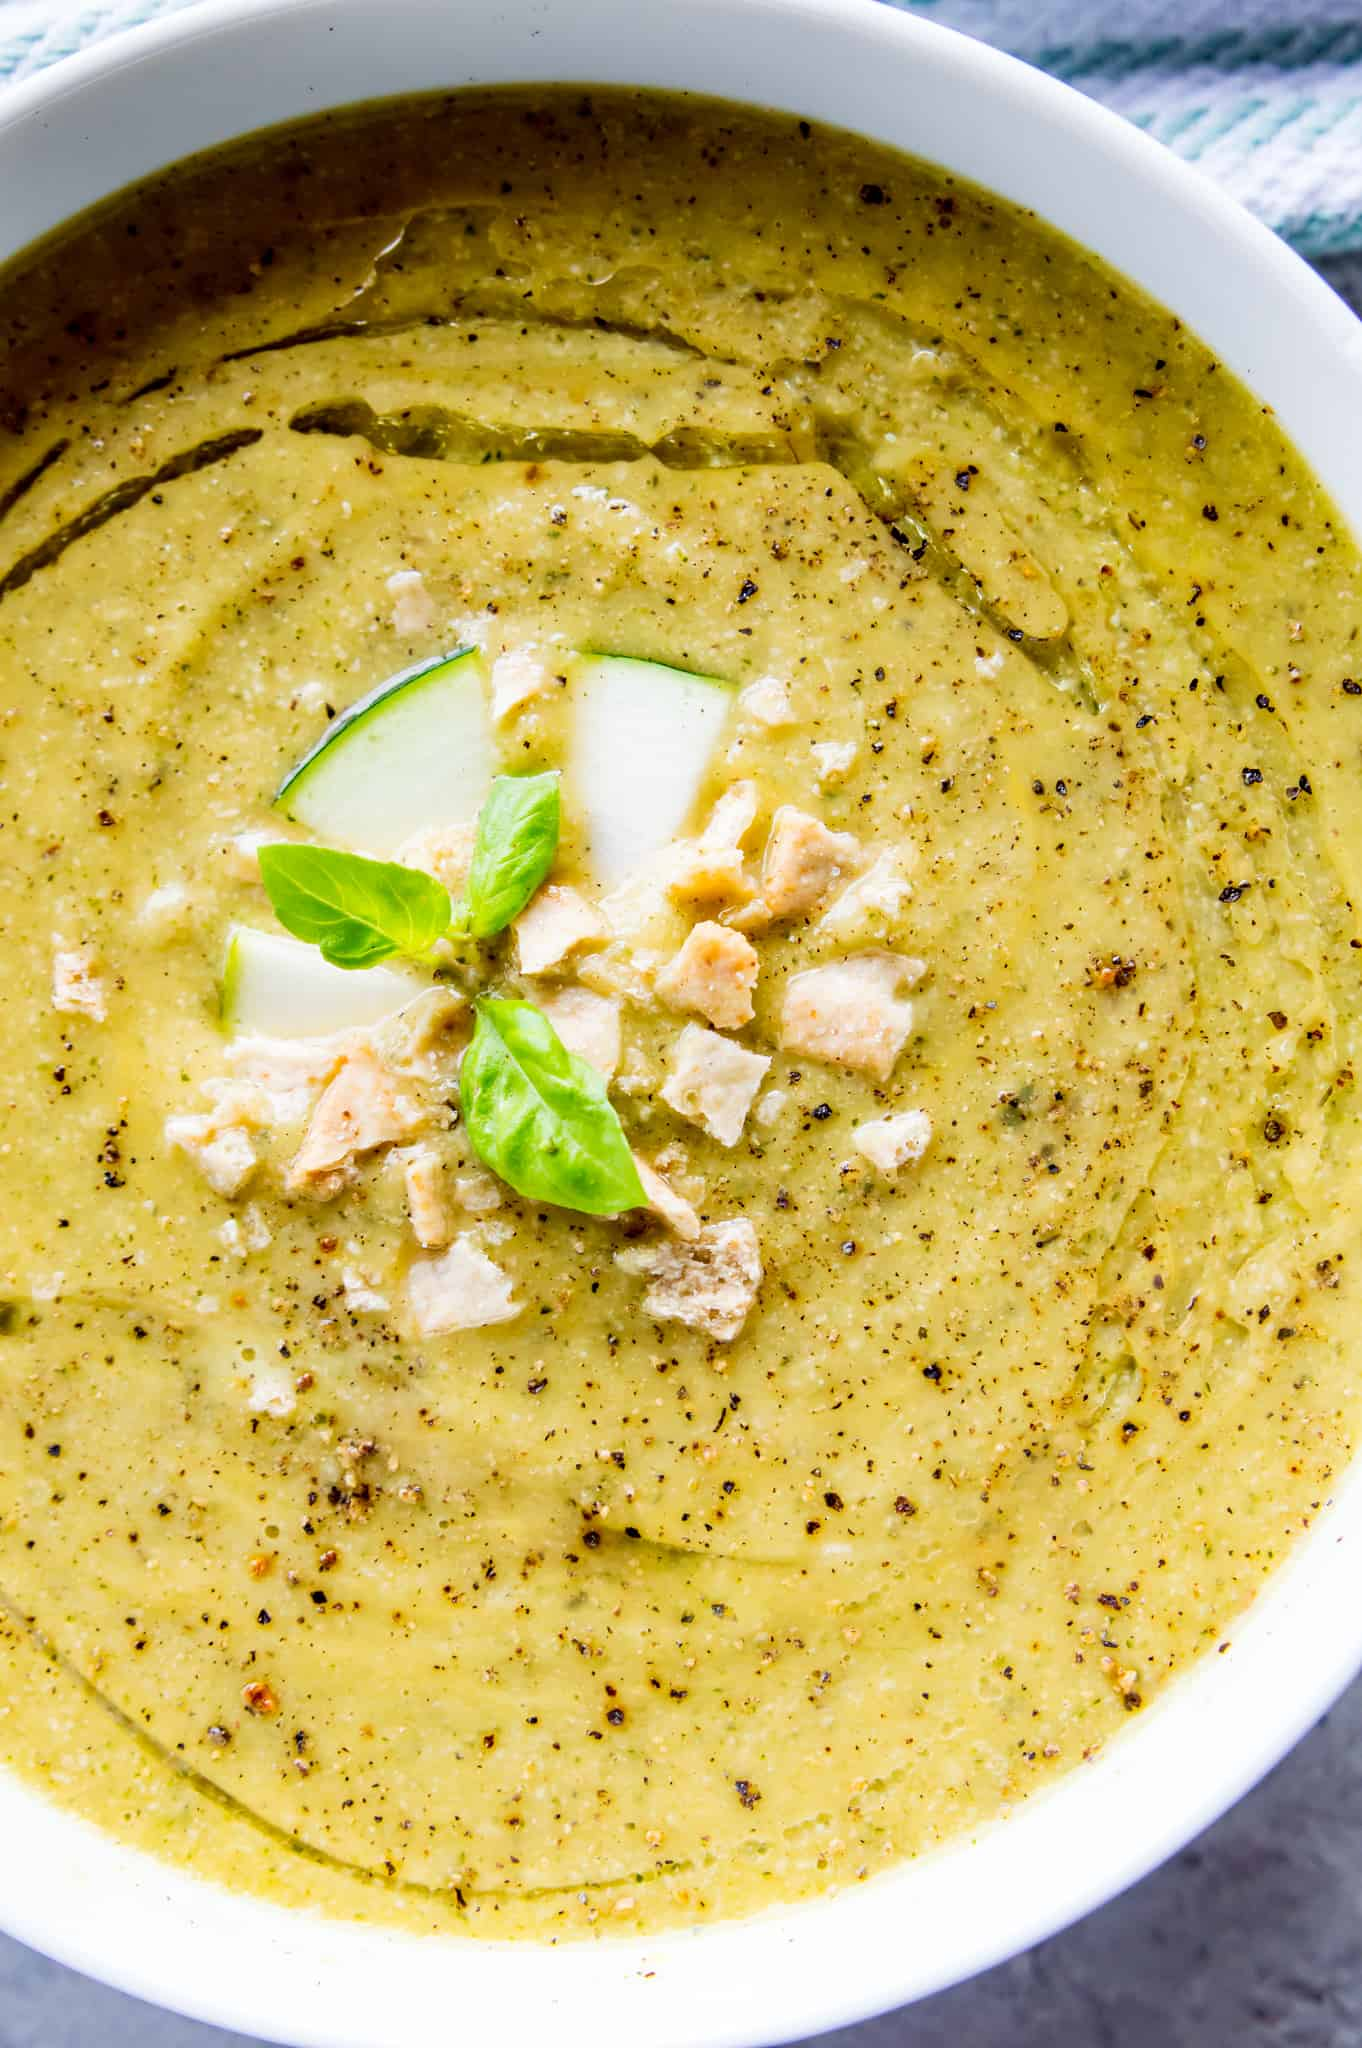 A bowl of creamy vegan zucchini soup topped with crackers and basil